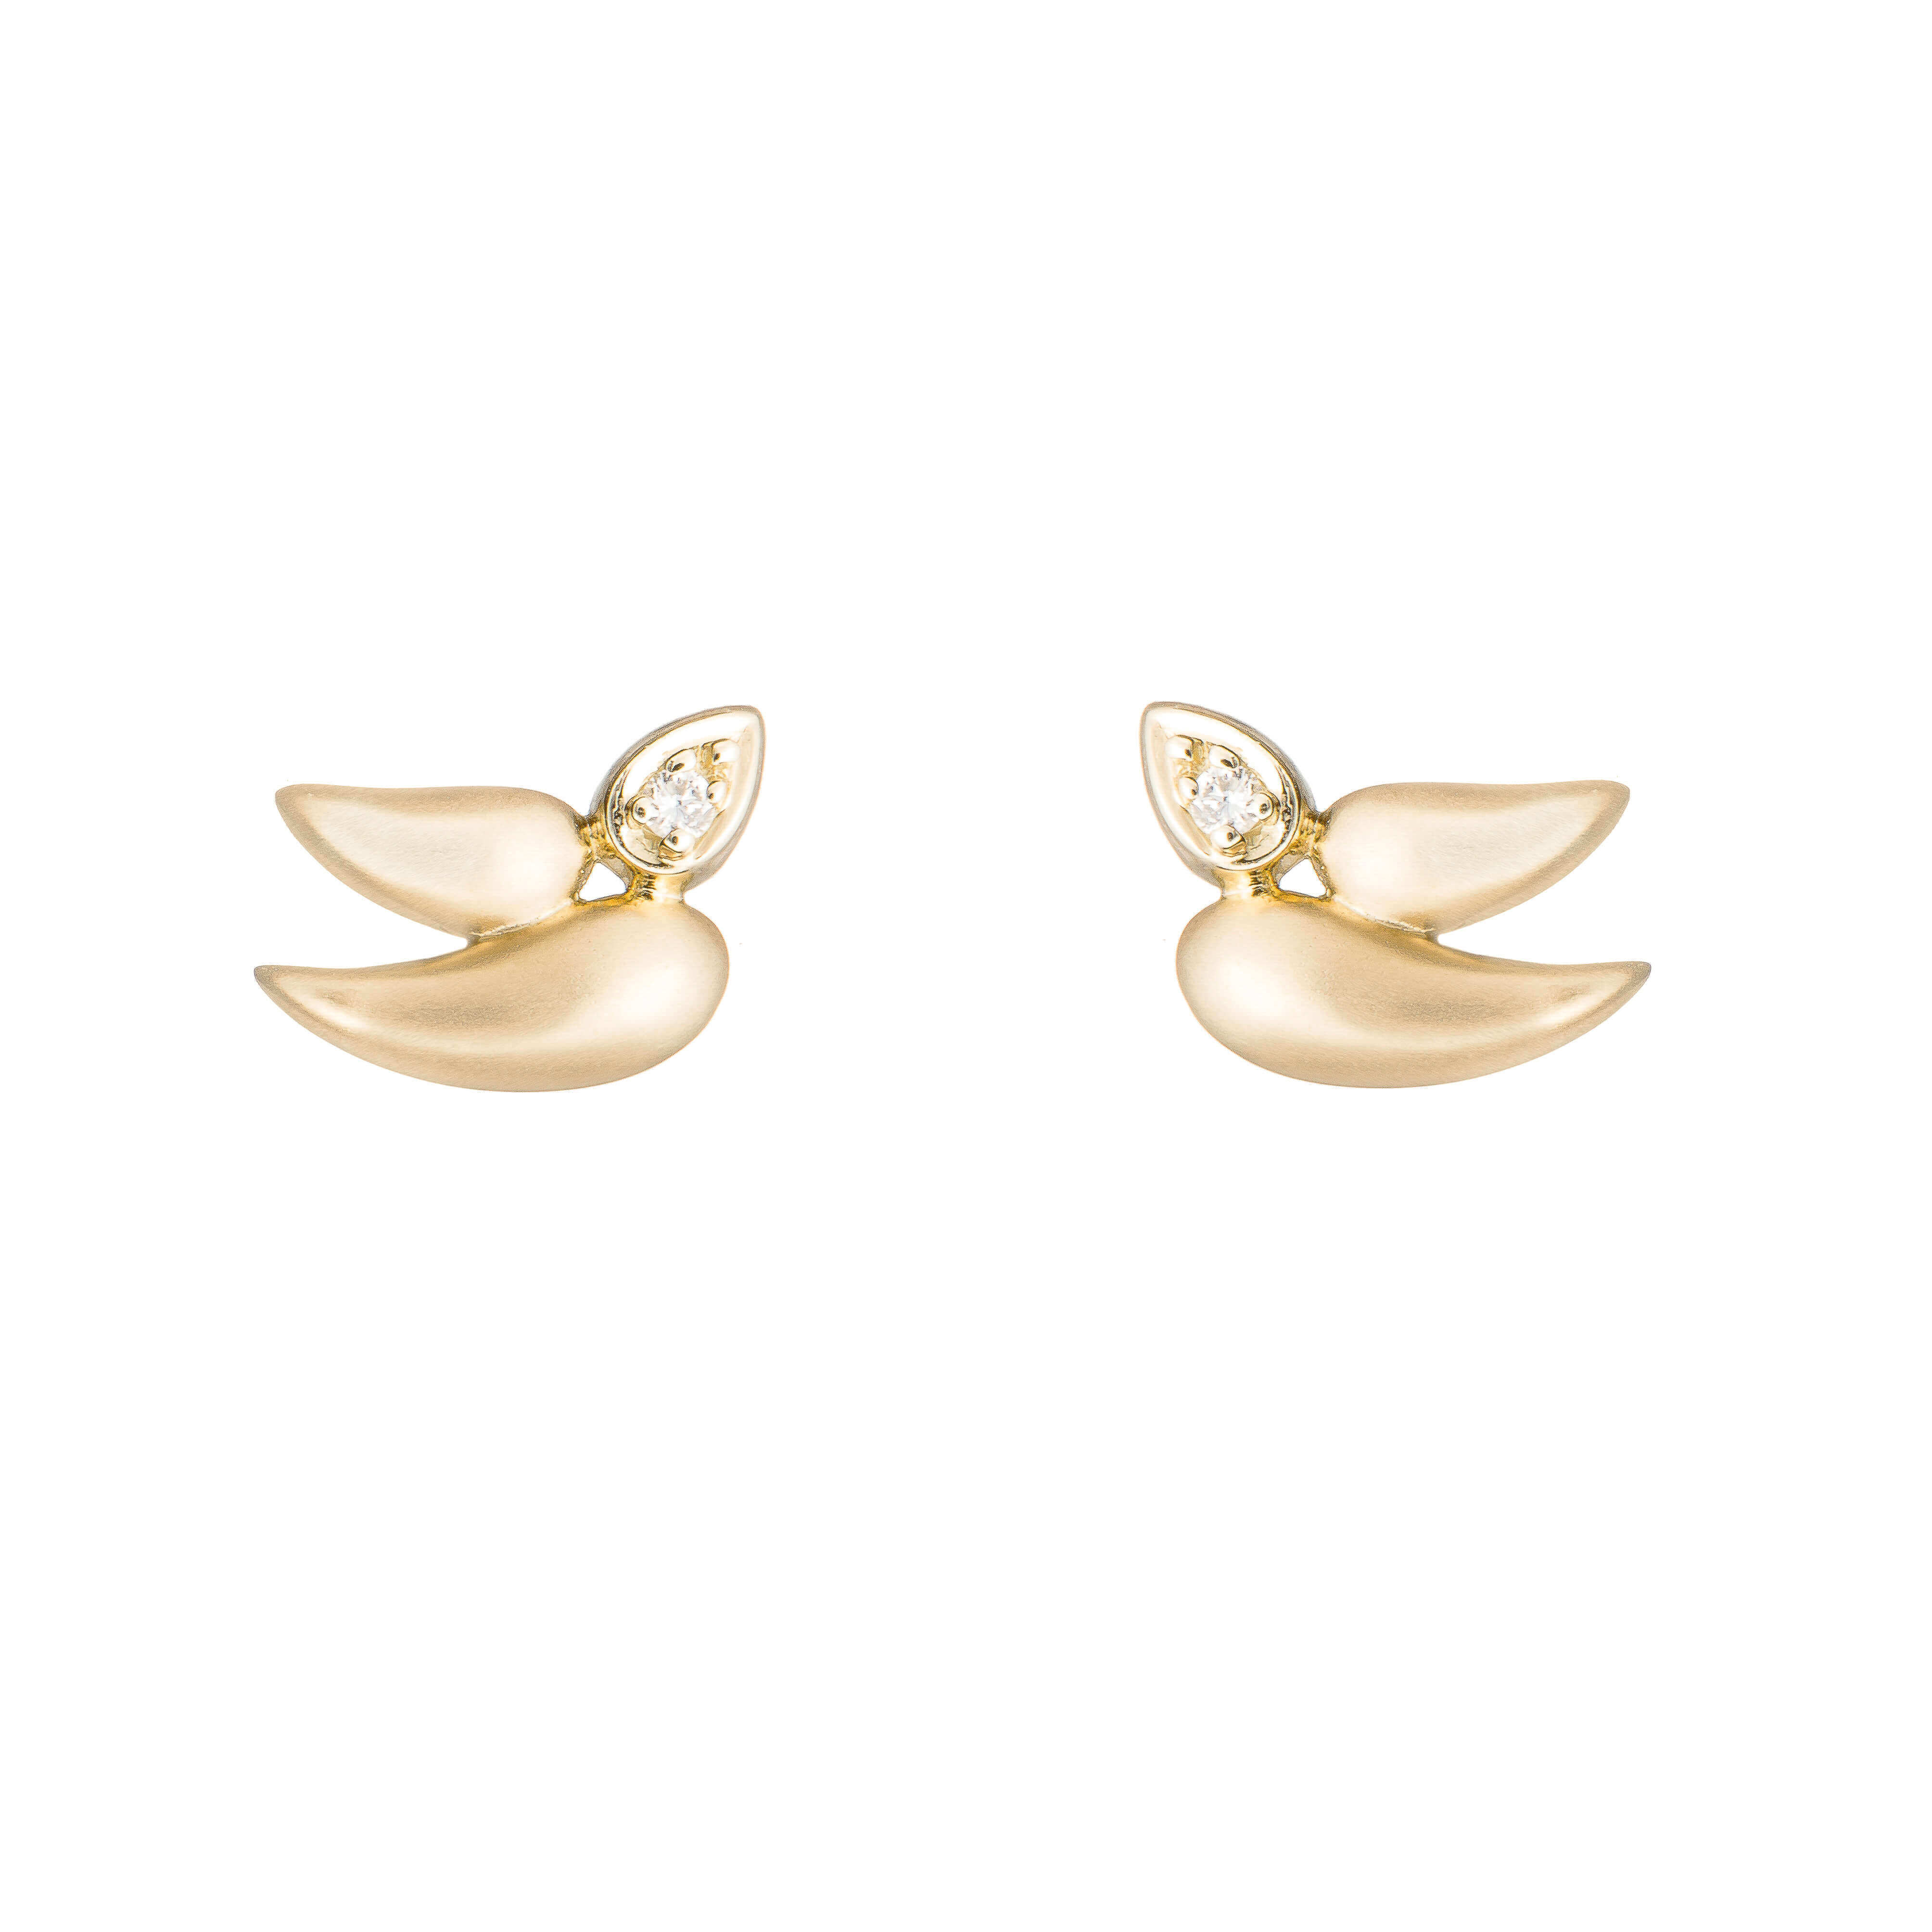 MyCollection_H.Stern_-_Peace_Dove_earrings_in_18K_yellow_gold_with_diamonds_(BE2B_205177)